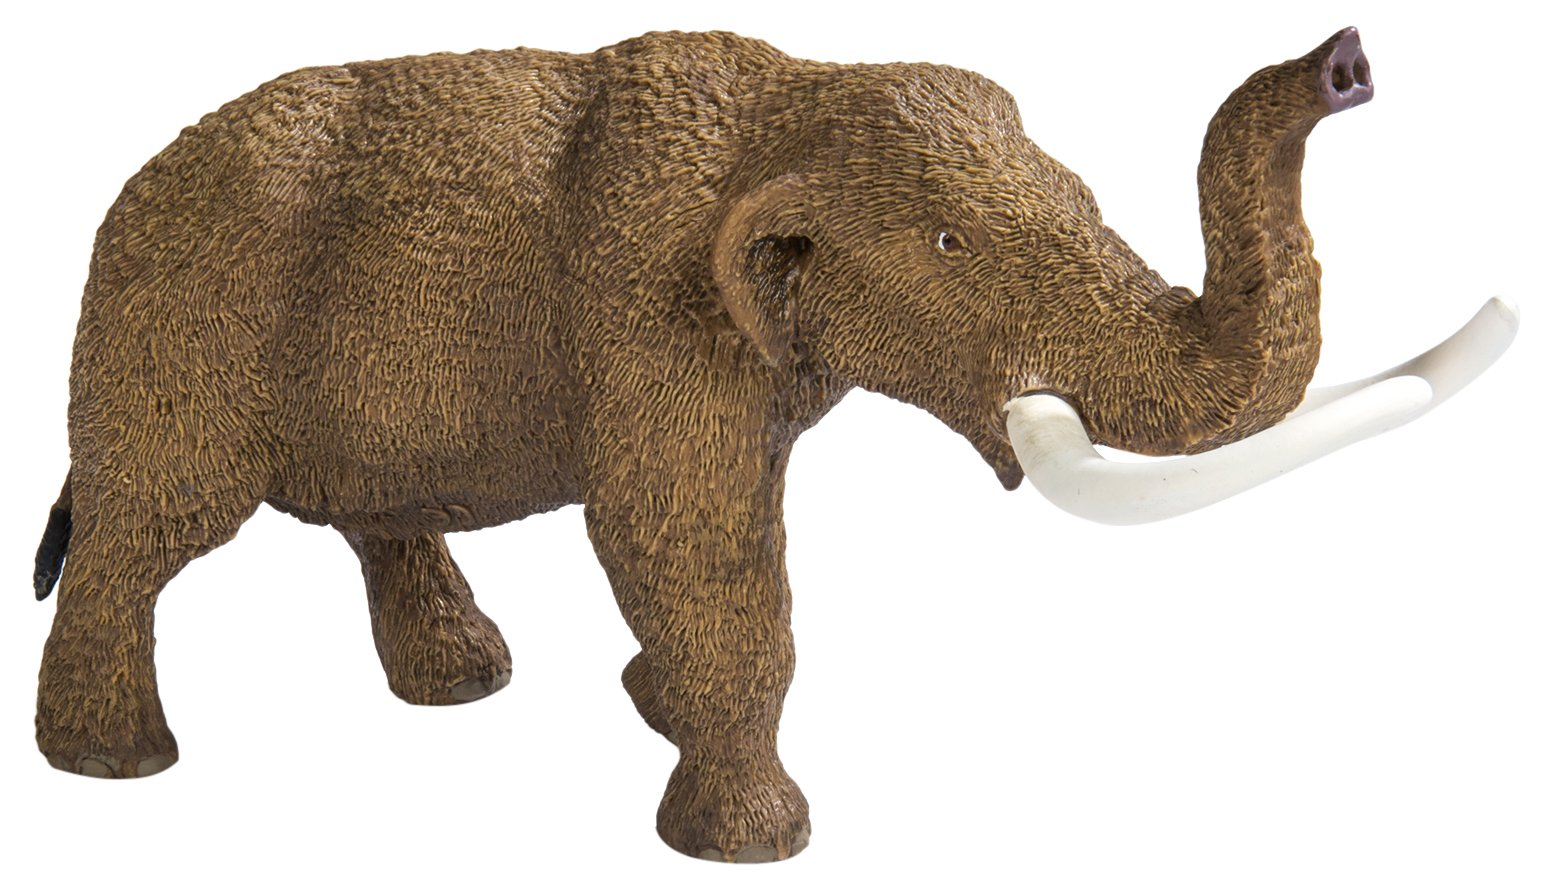 WS PREHISTORIC WORLD SAFARI LTD SAF100081 AMERICAN MASTODON